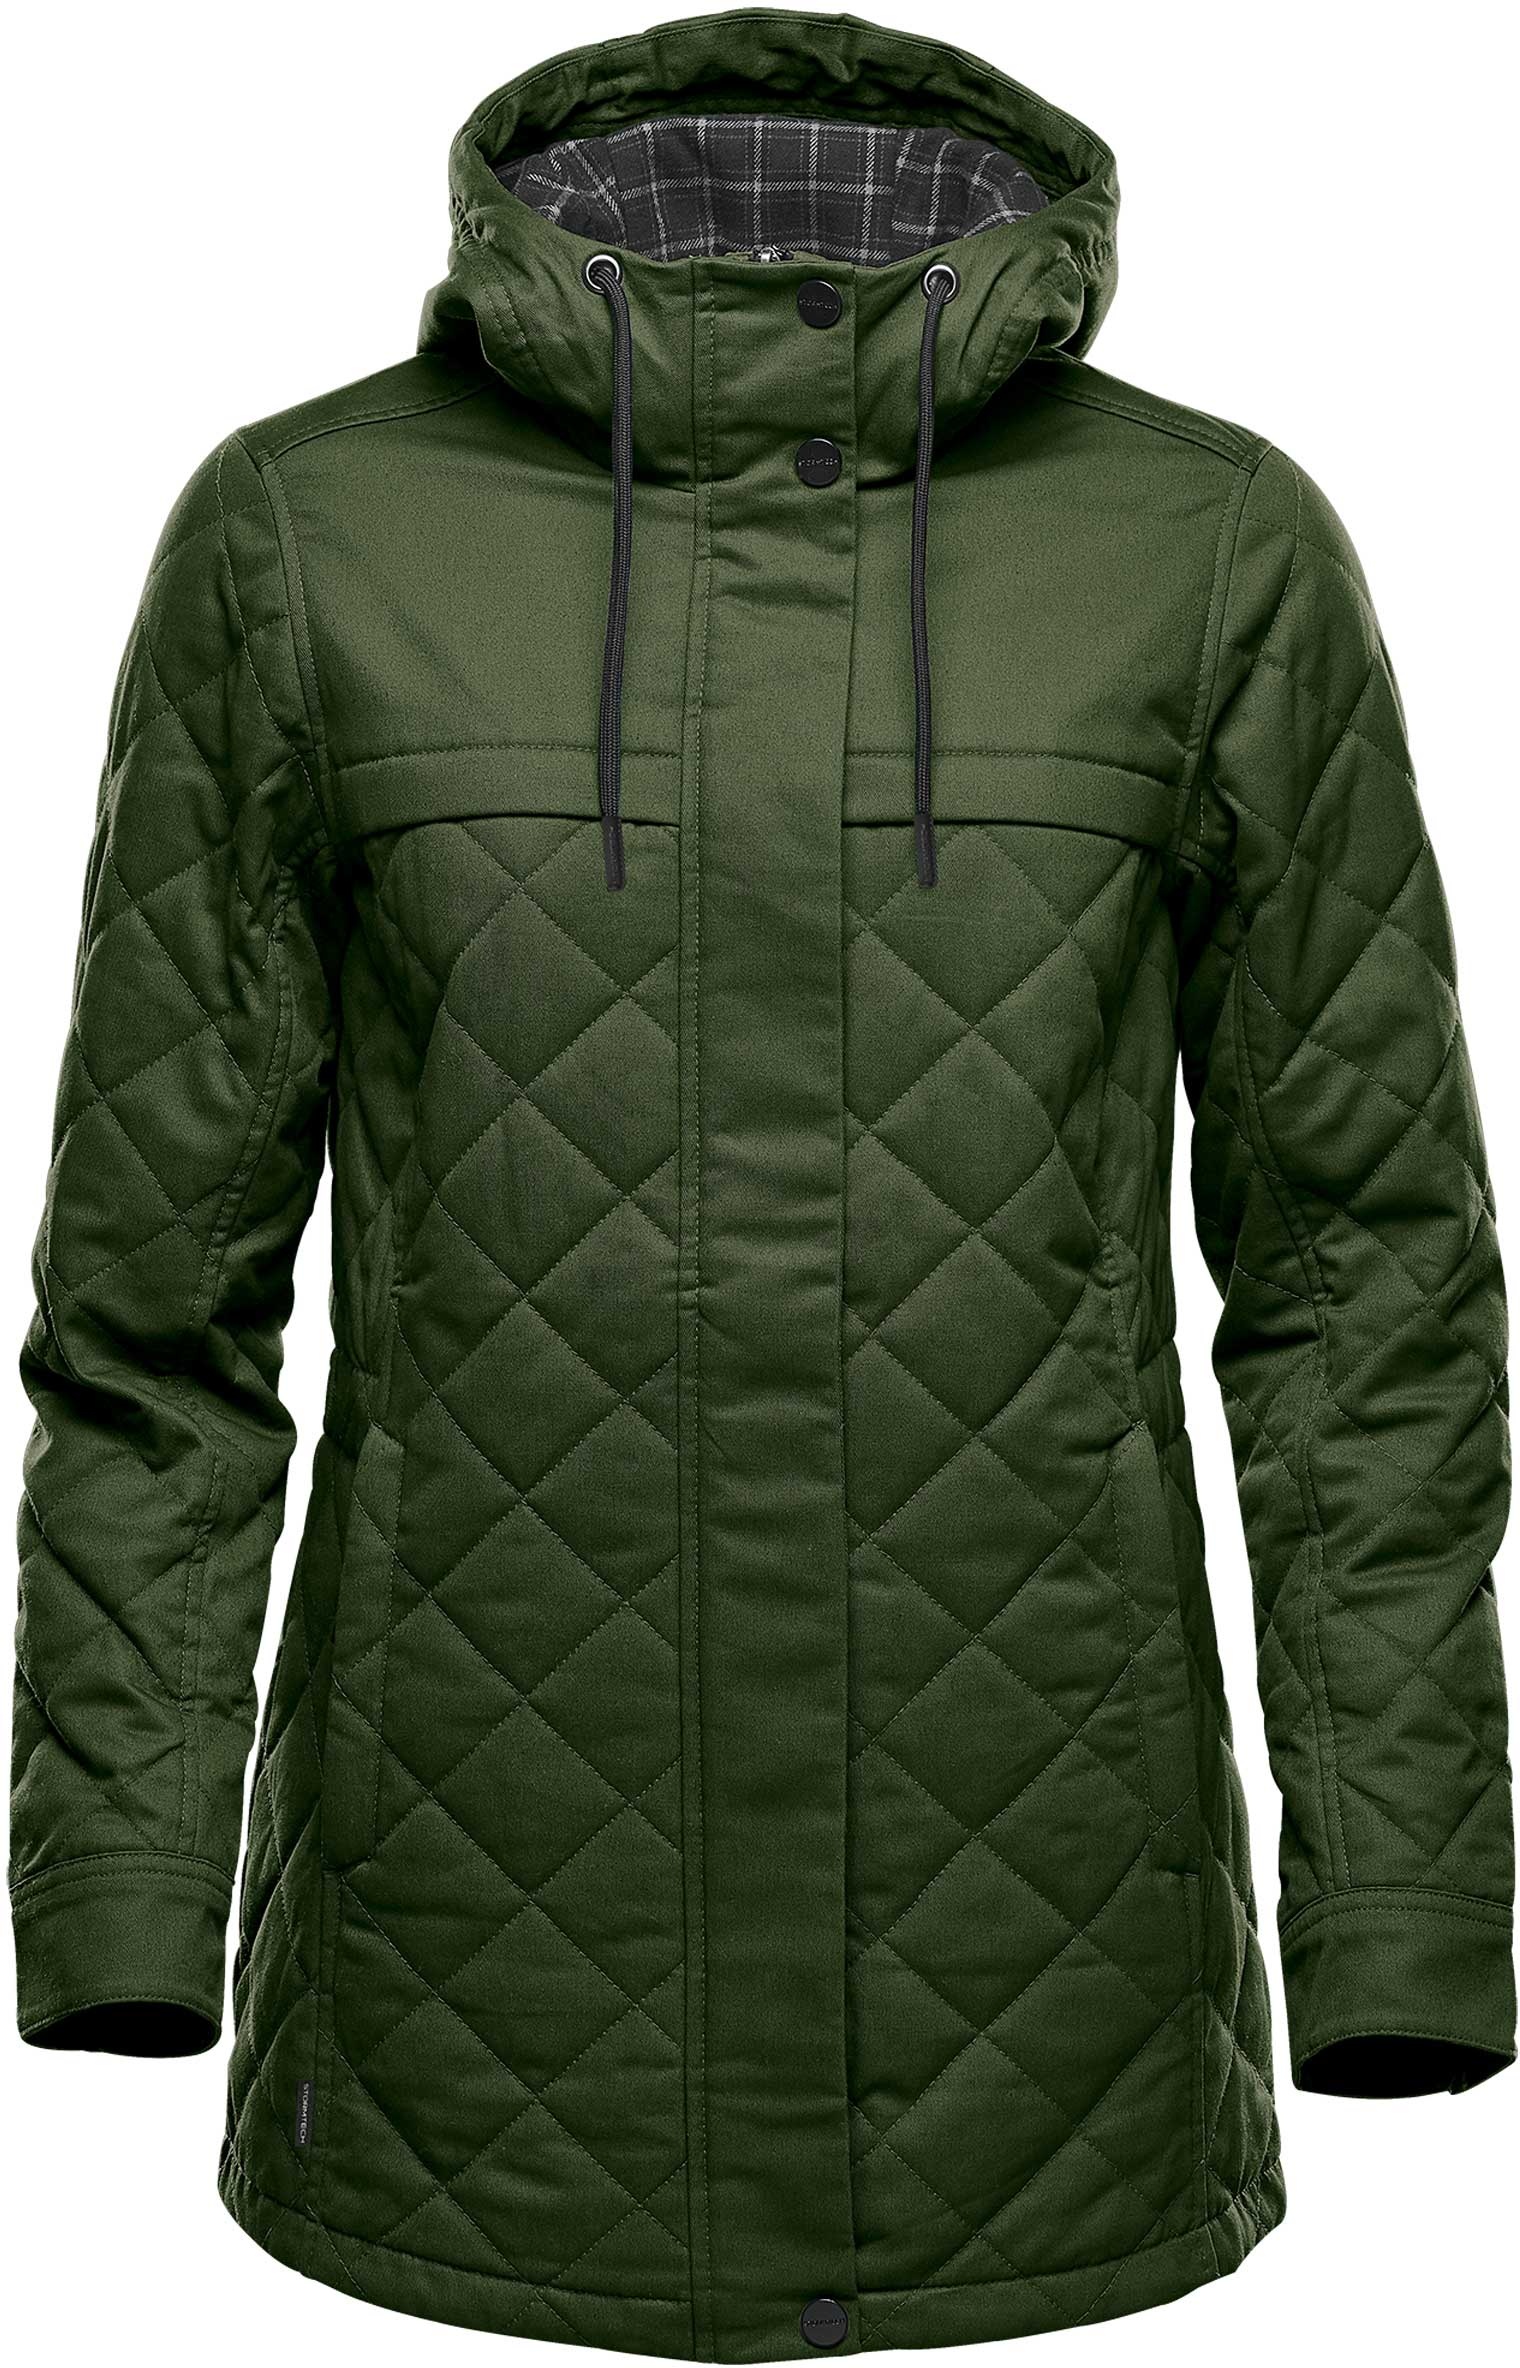 Picture of Stormtech Women's Bushwick Quilted Jacket